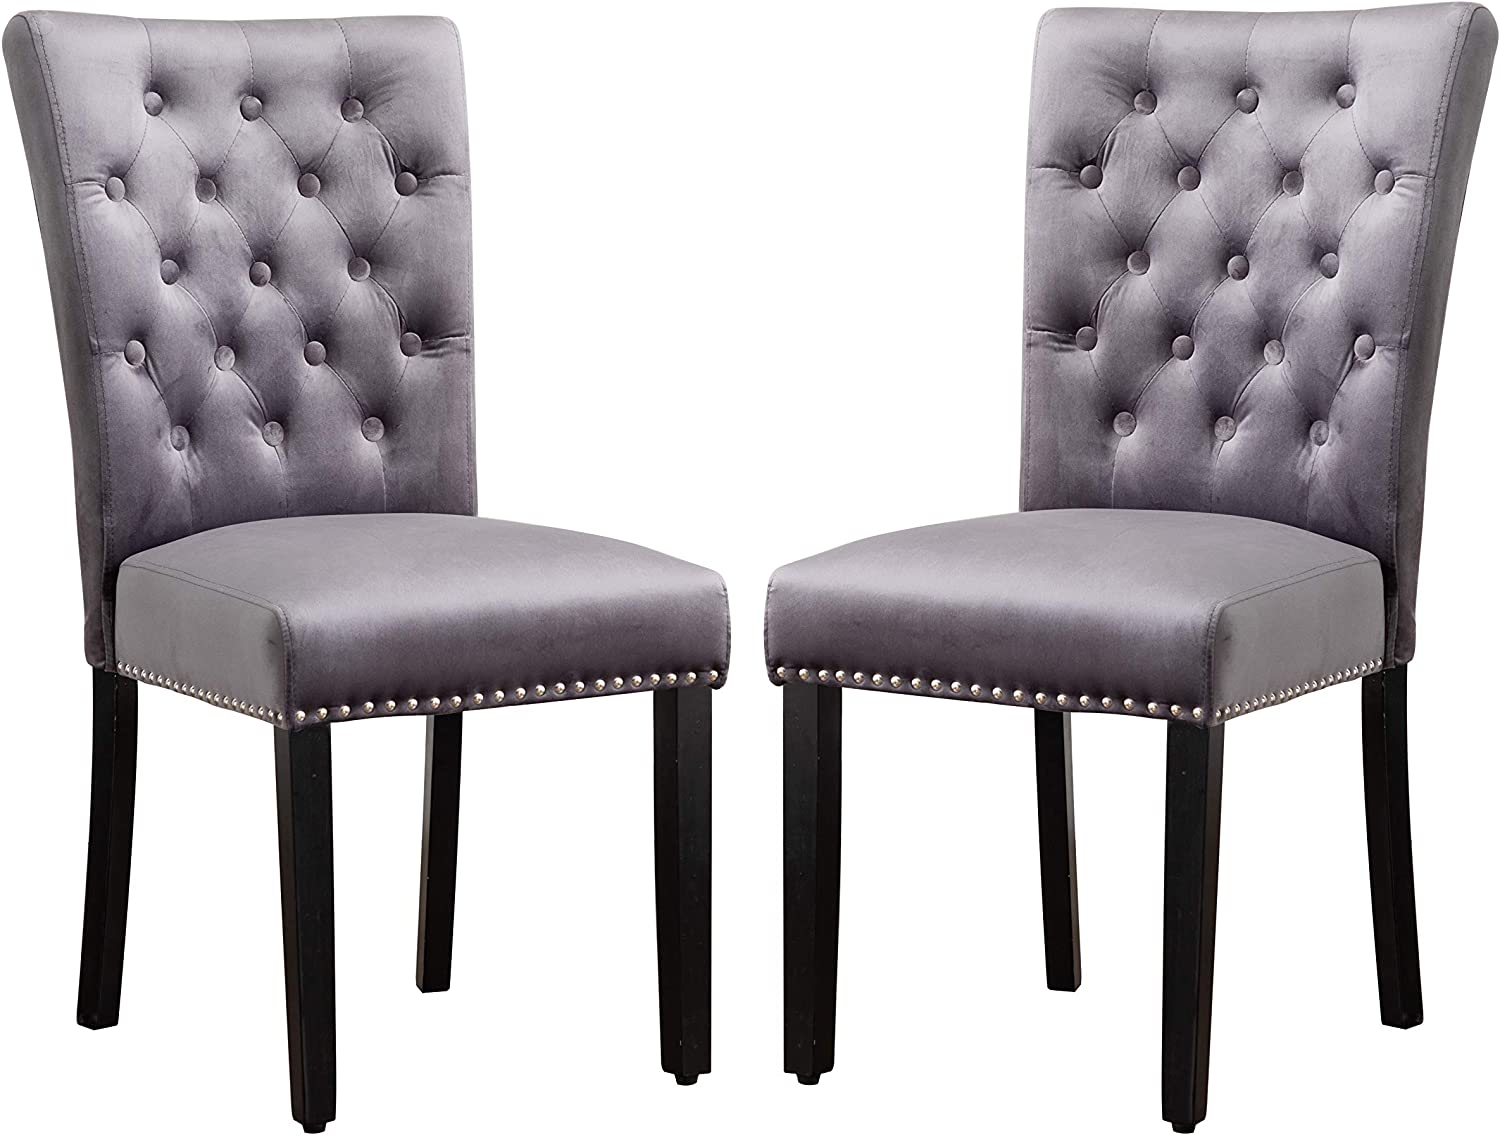 Velvet Parsons Upholstered Dining Ranking TOP6 Chair Armless Nai with lowest price Accent